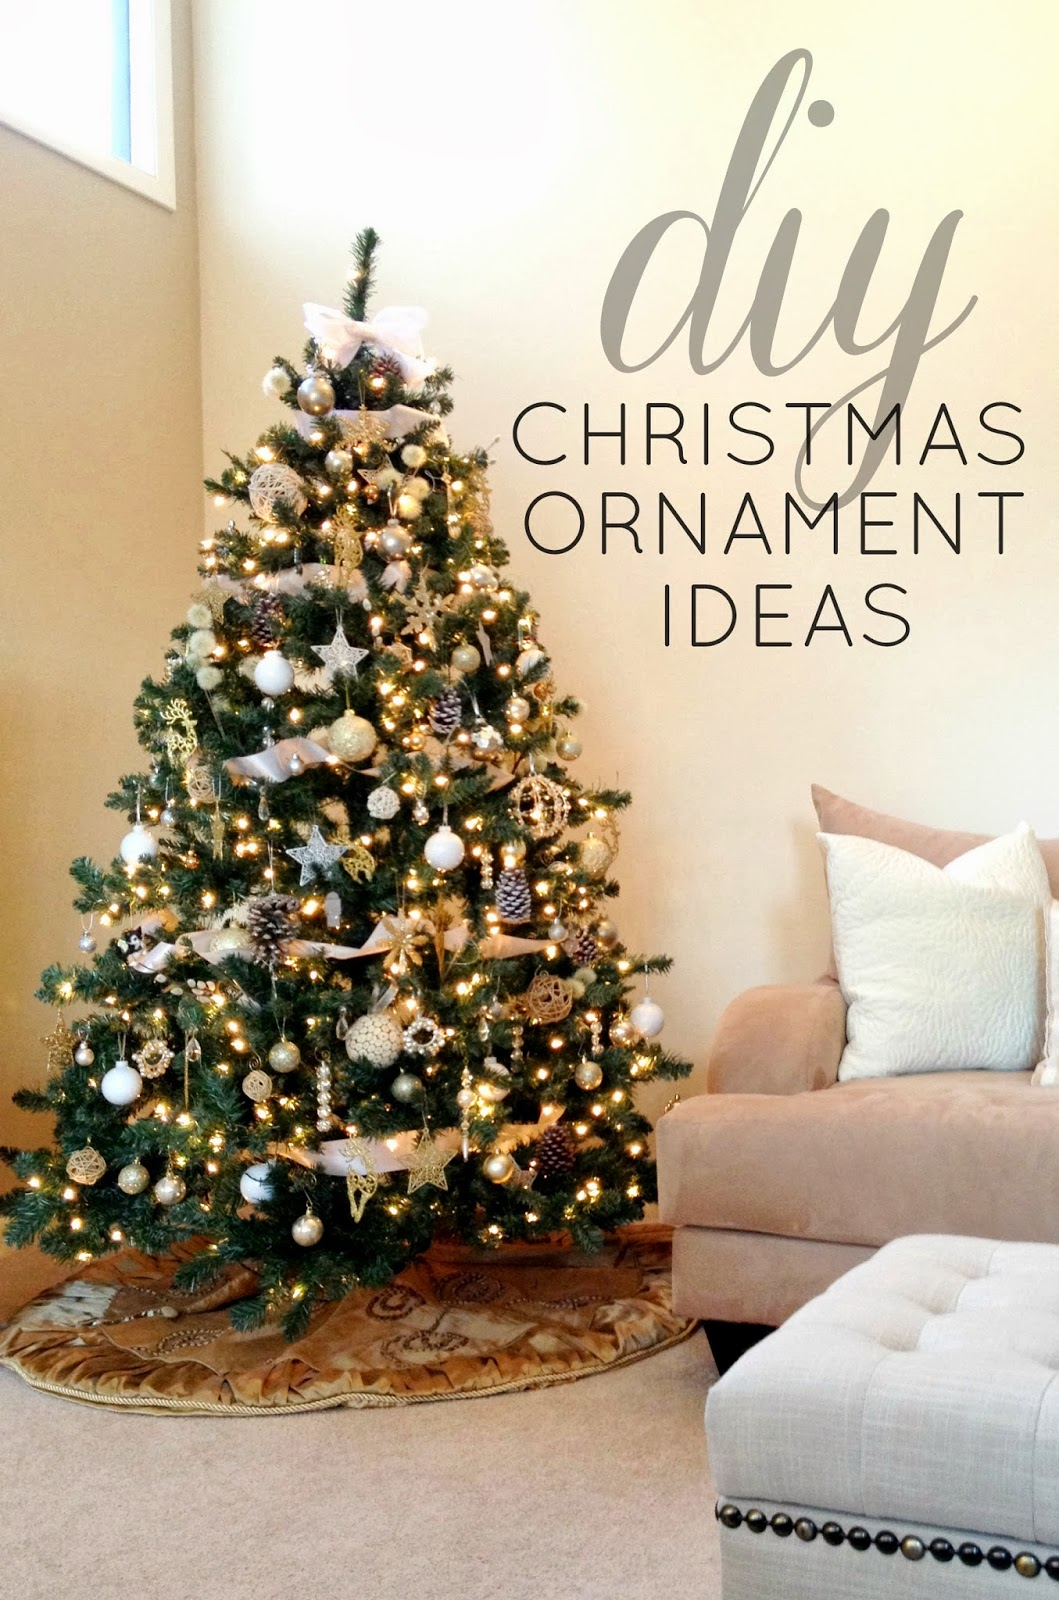 Livelovediy diy christmas ornaments ideas for Decoration xmas ideas